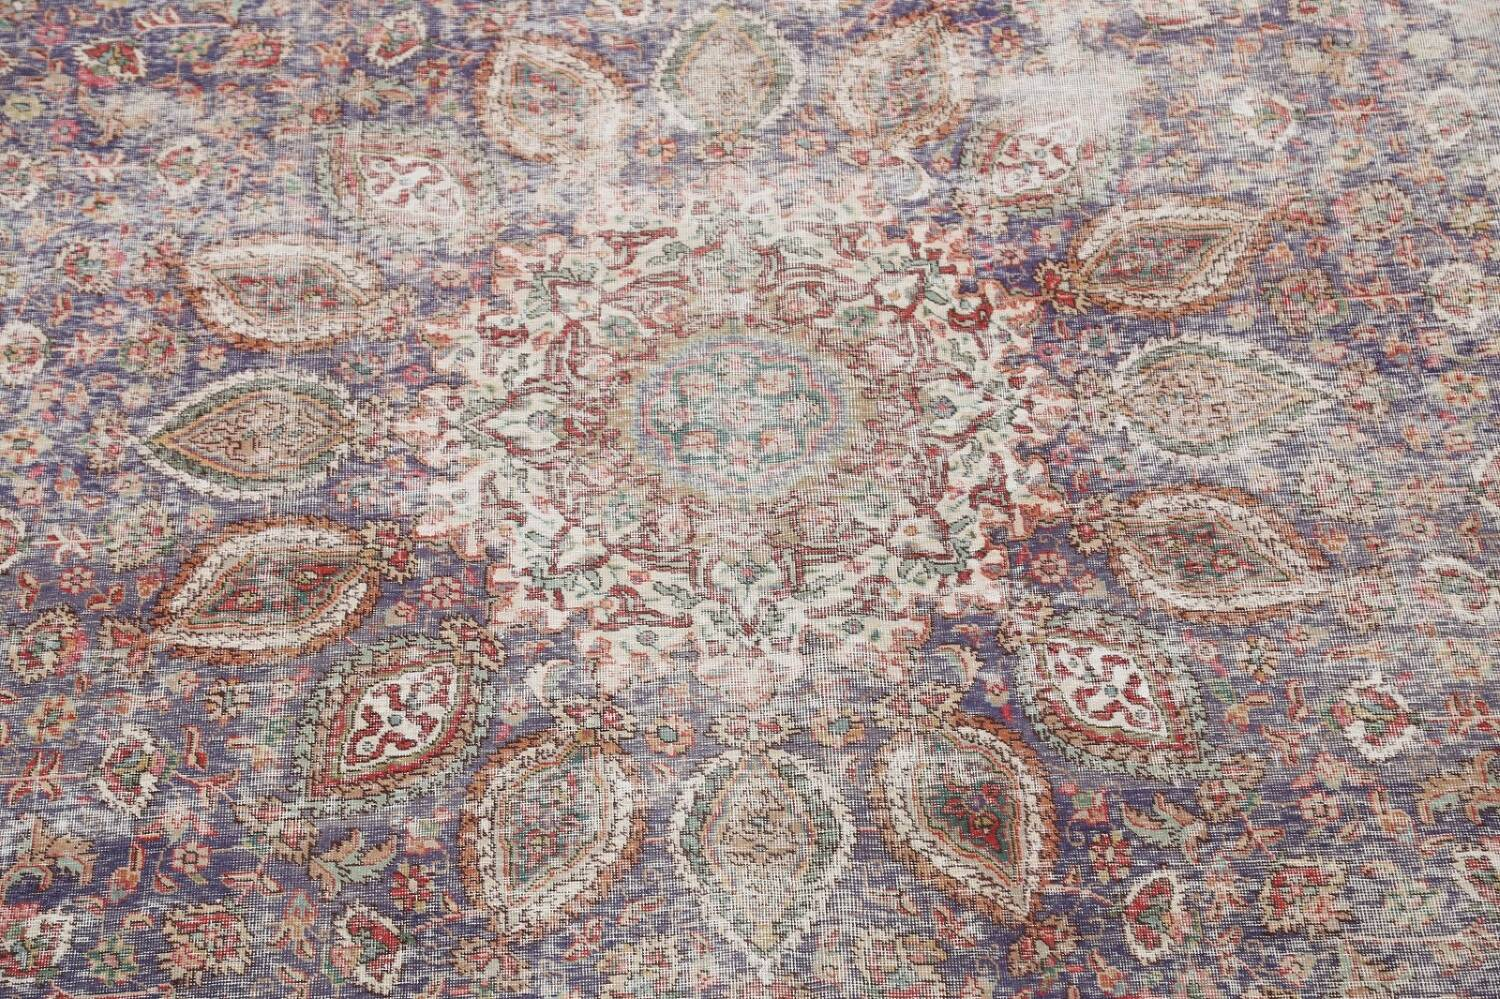 Antique Distressed Floral Tabriz Persian Area Rug 10x13 image 4